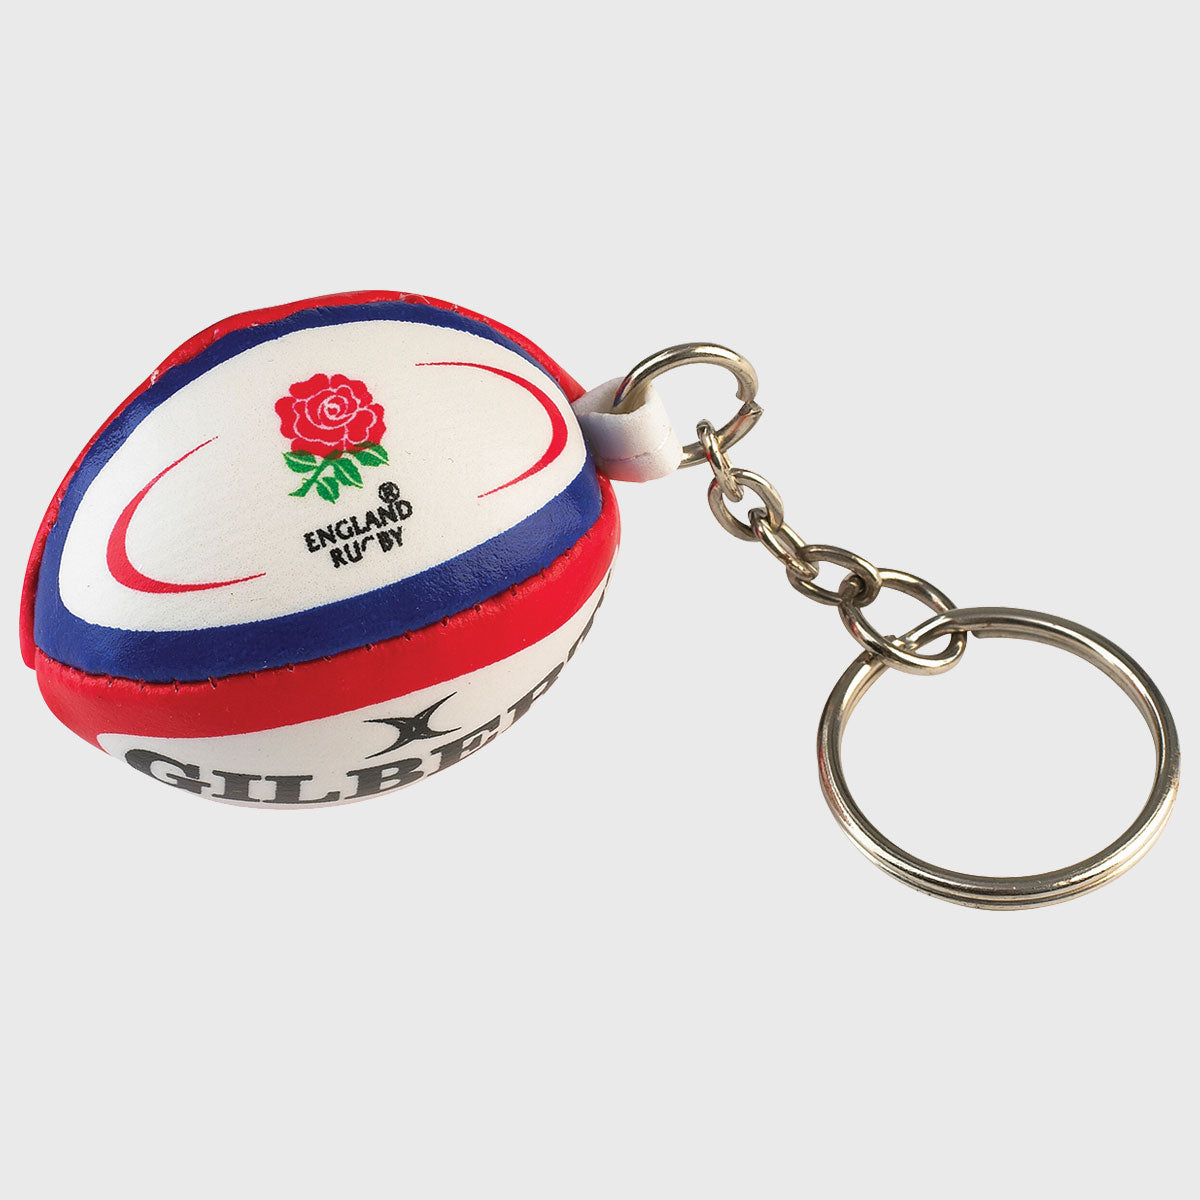 England Rugby Ball Keyring